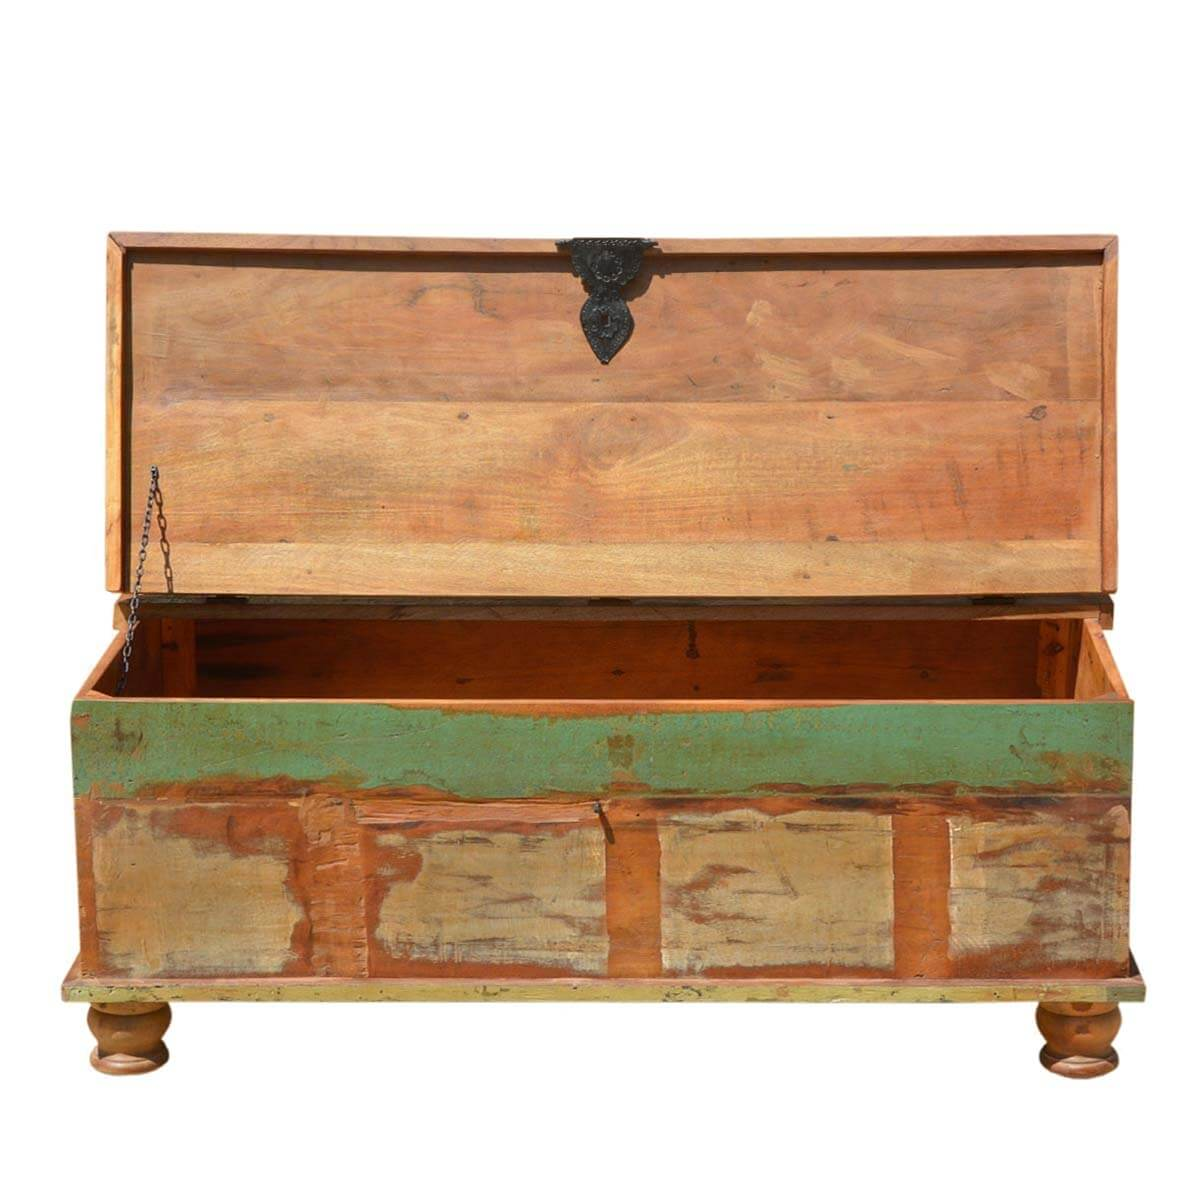 Reclaimed Wood Stump Coffee Table: Grinnell Rustic Reclaimed Wood Coffee Table Storage Trunk